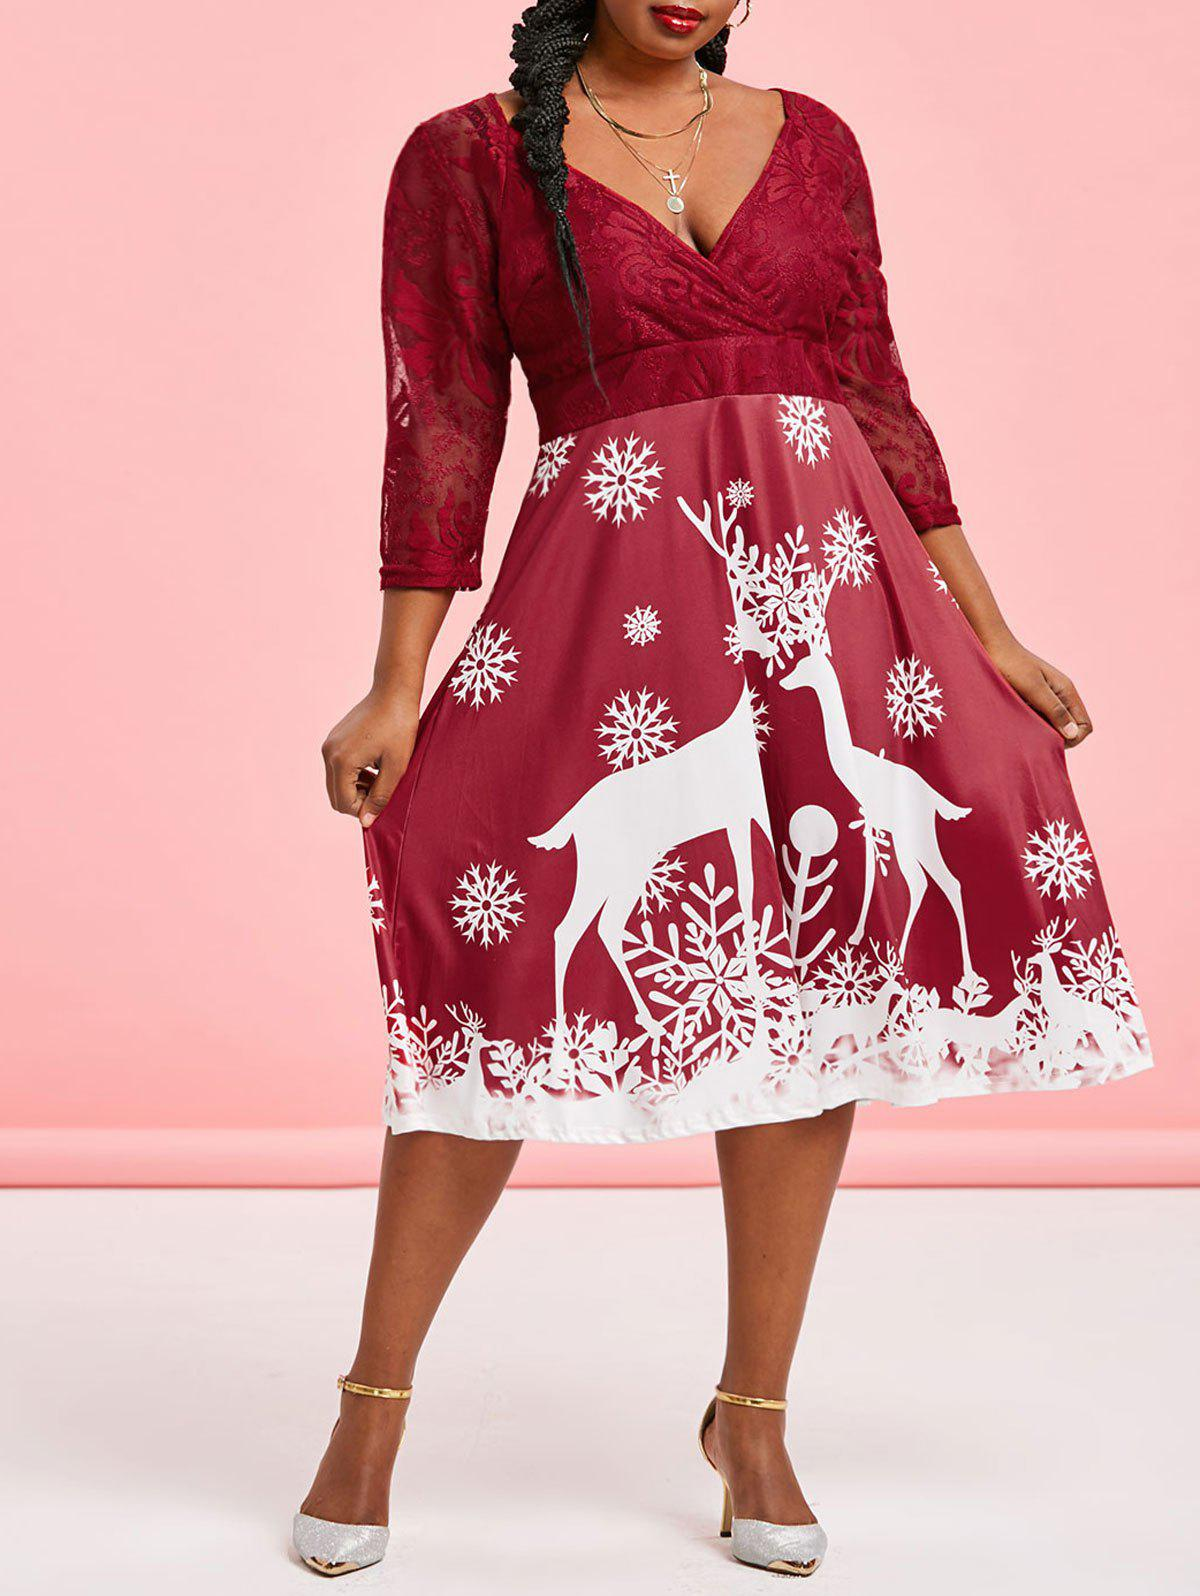 Plus Size Lace Sheer Christmas Snowflake A Line Dress - RED WINE 2X